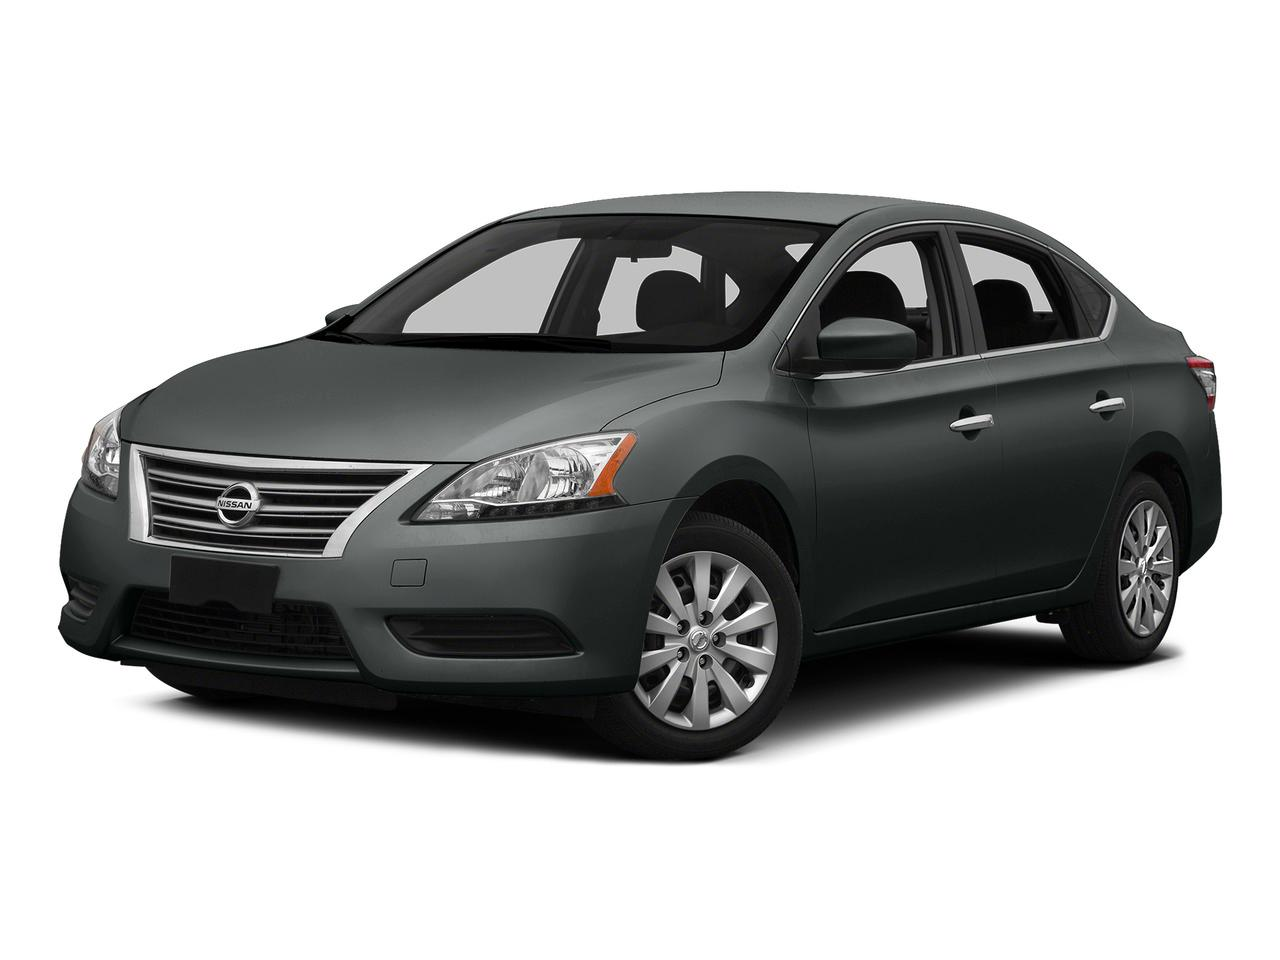 2015 Nissan Sentra Vehicle Photo in San Antonio, TX 78257